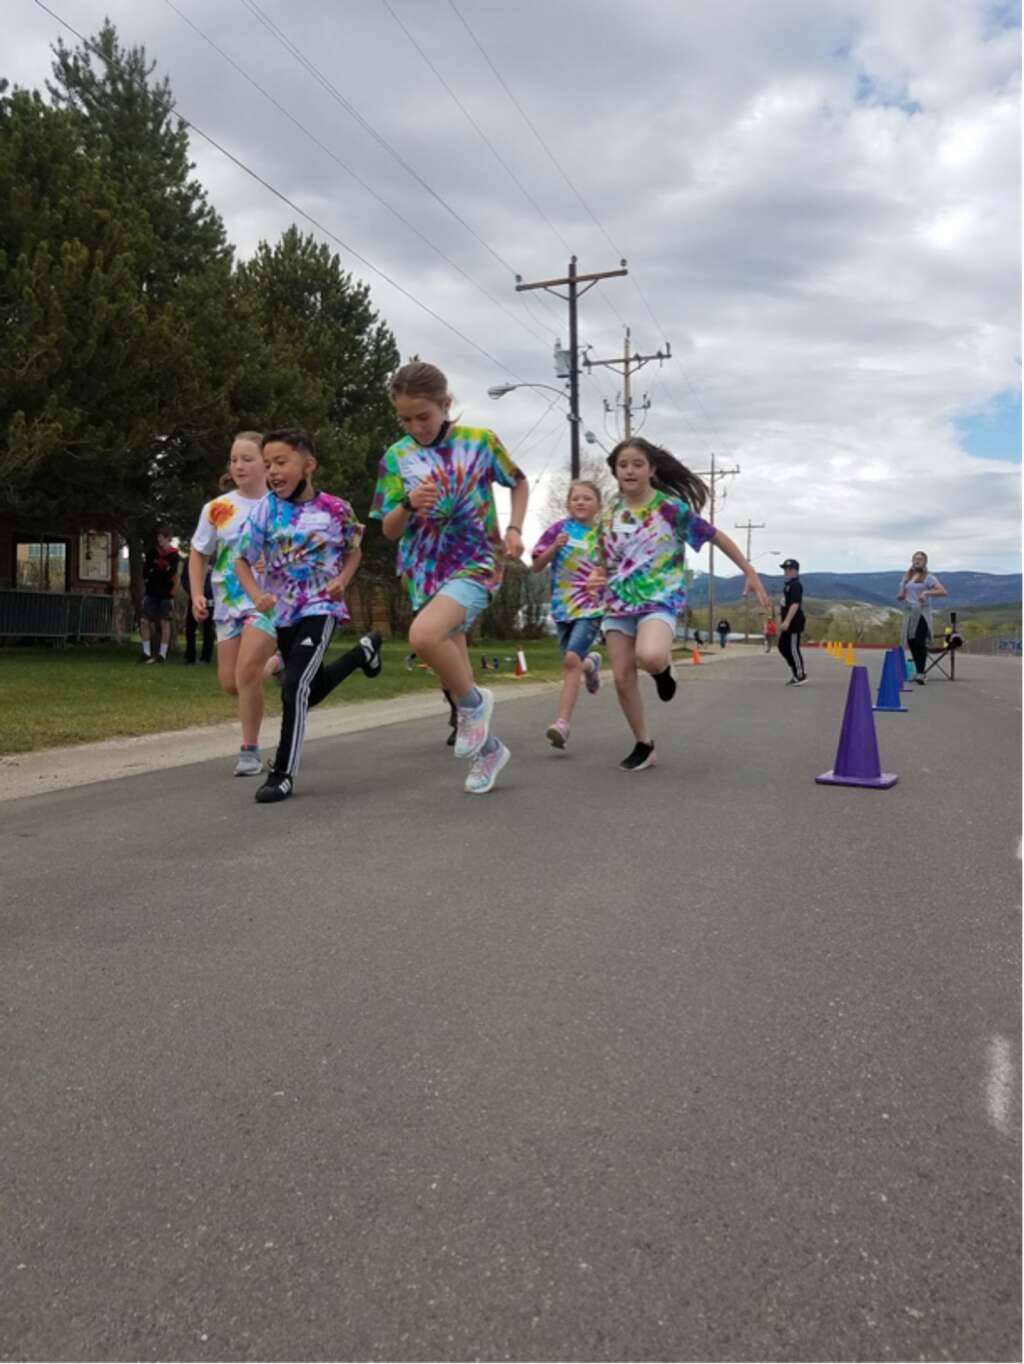 Students race in the Granby Elementary field day.